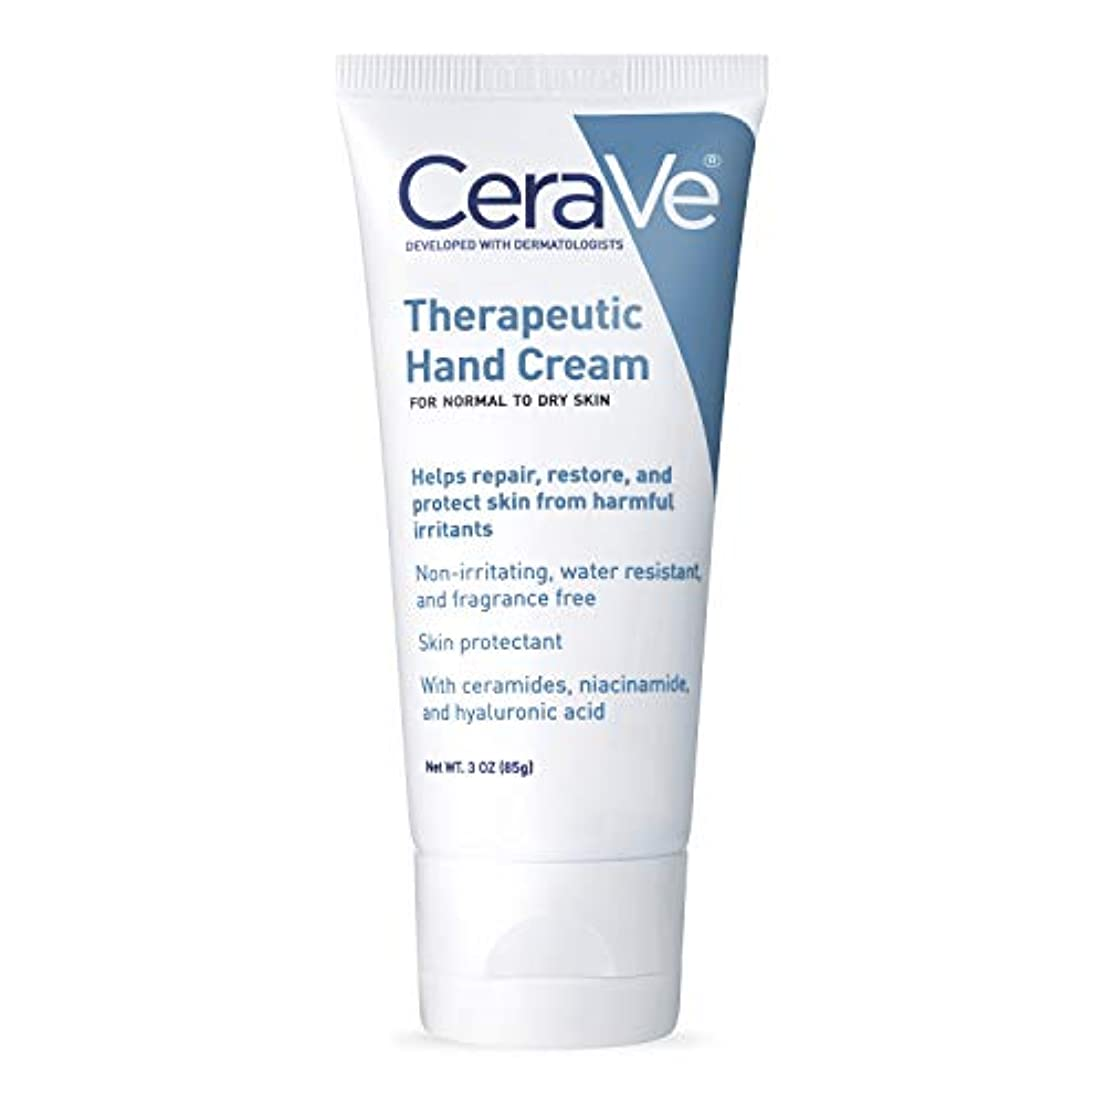 インシデント適格共役海外直送品Cerave CeraVe Therapeutic Hand Cream For Normal to Dry Skin, 3 oz